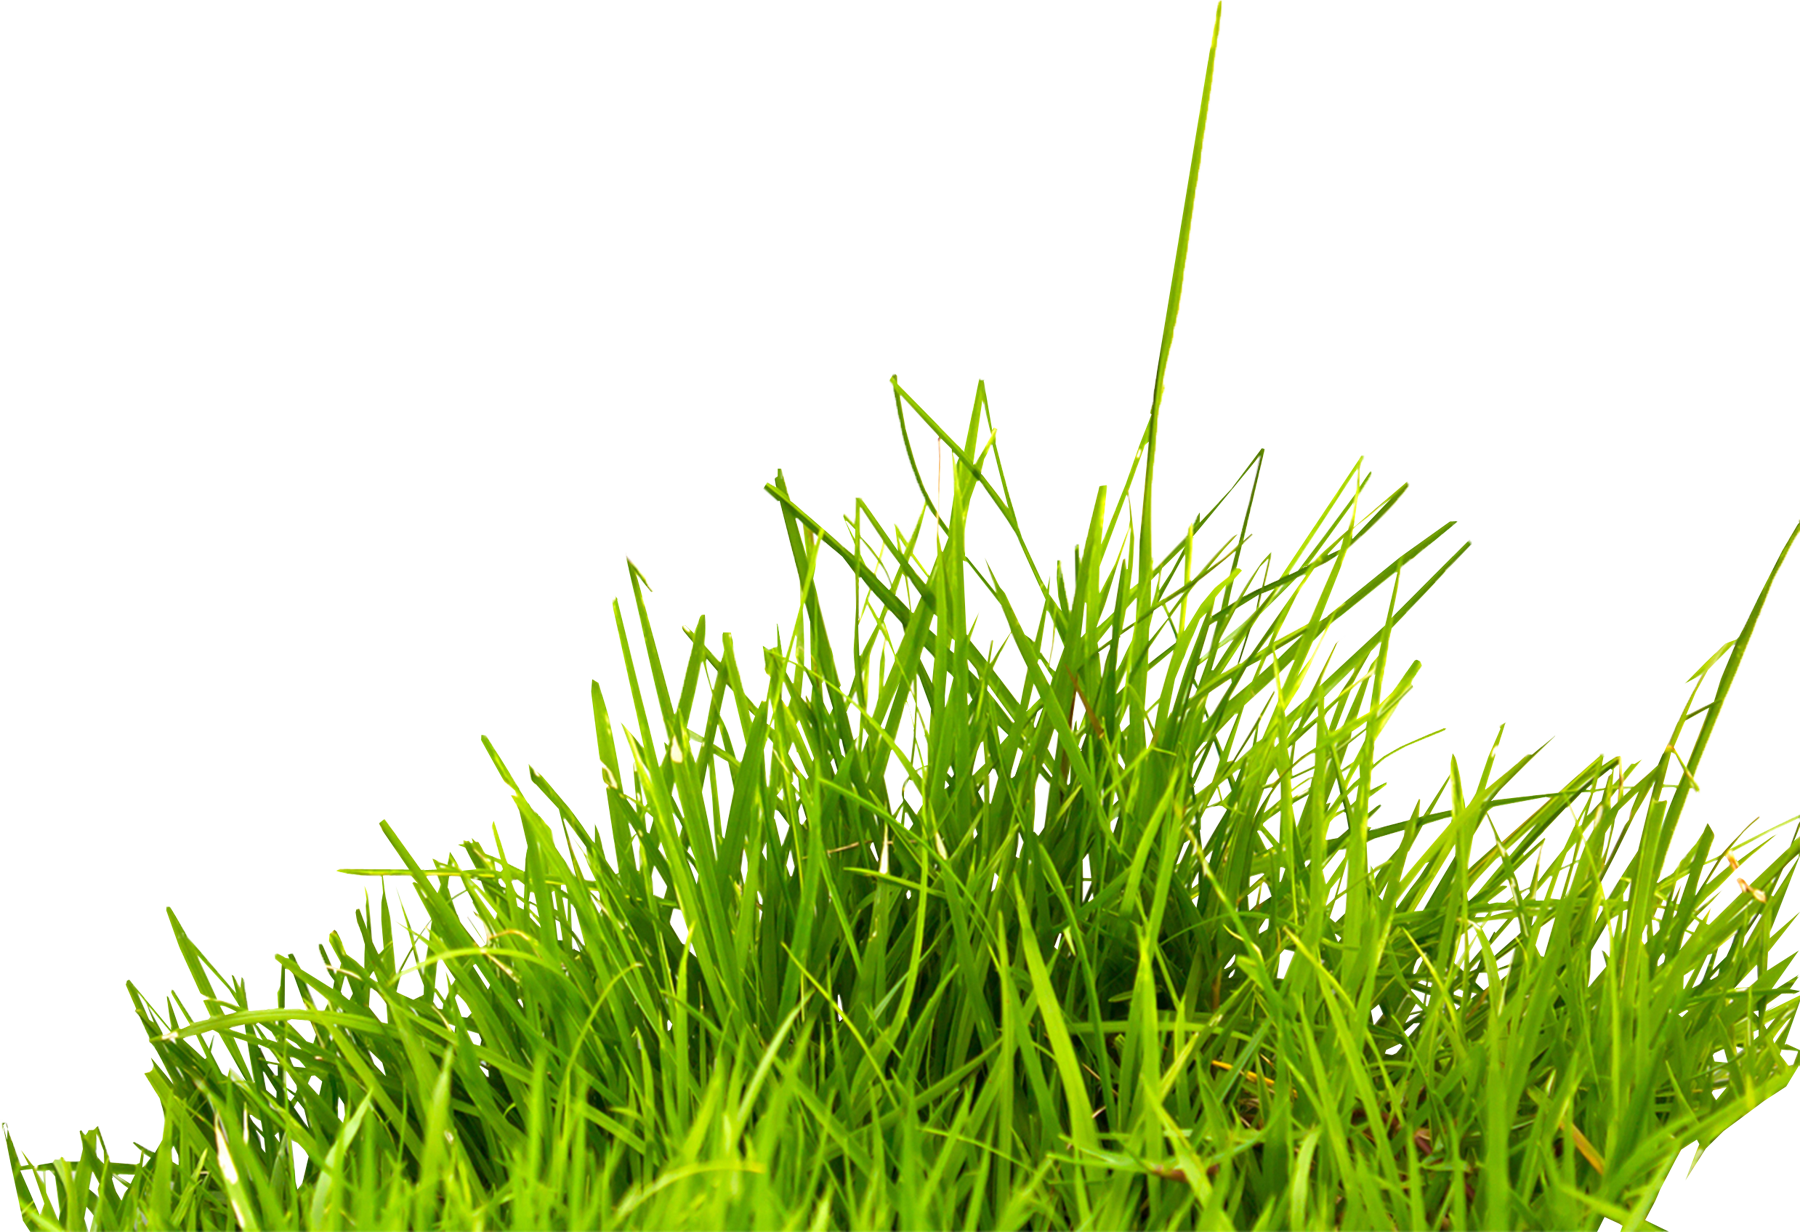 Desert grass png. Image green picture agi